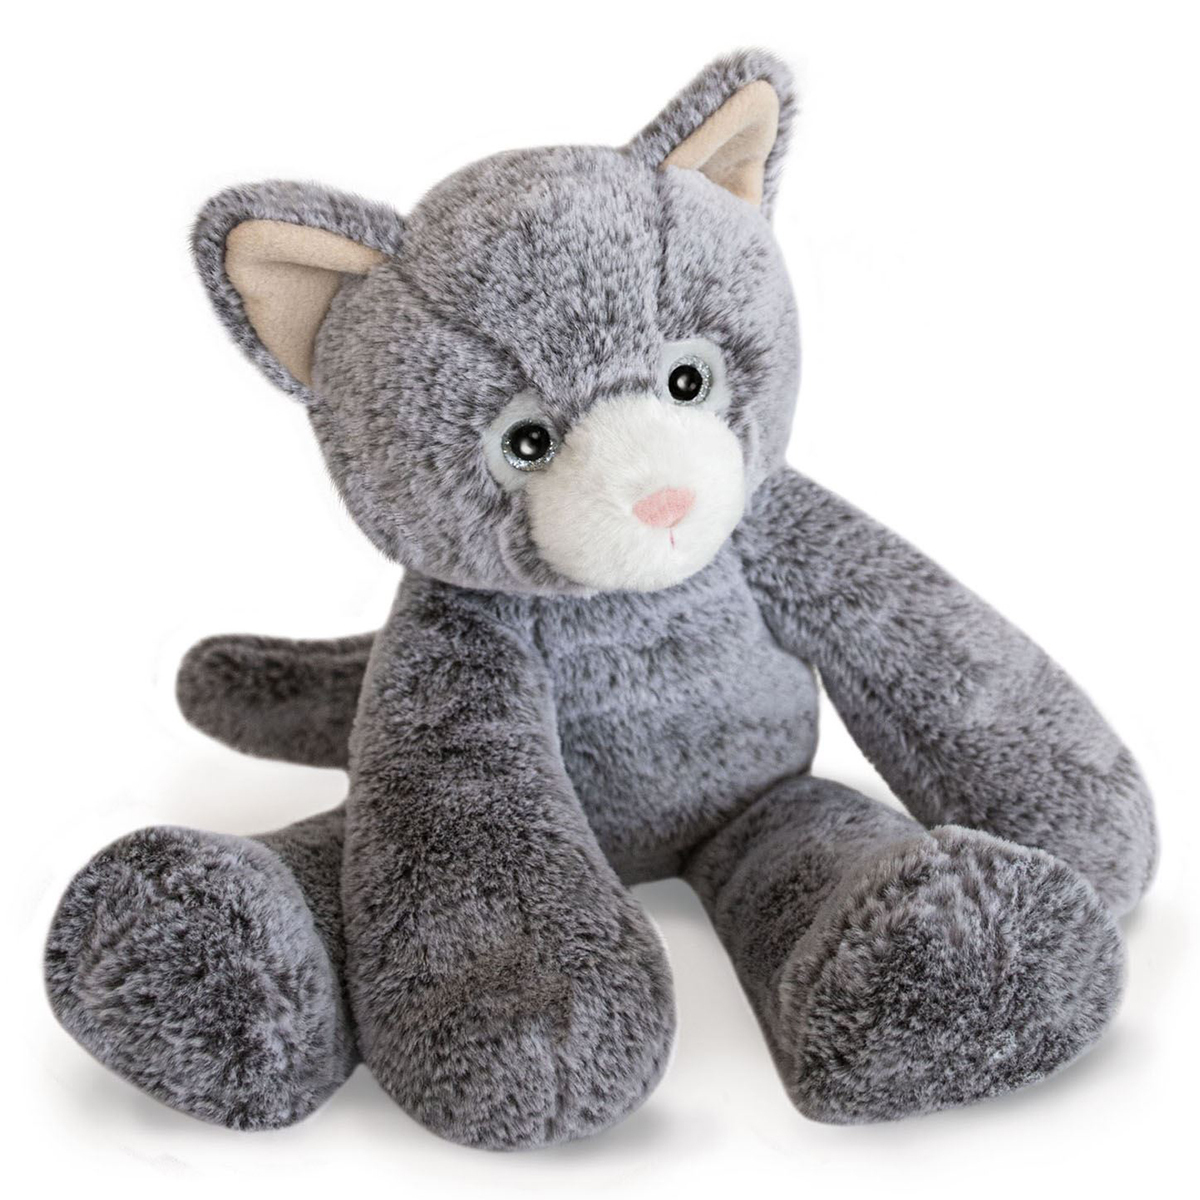 Peluche Peluche Sweety Mousse Chat - Grand Peluche Chat Sweety Mousse 40 cm